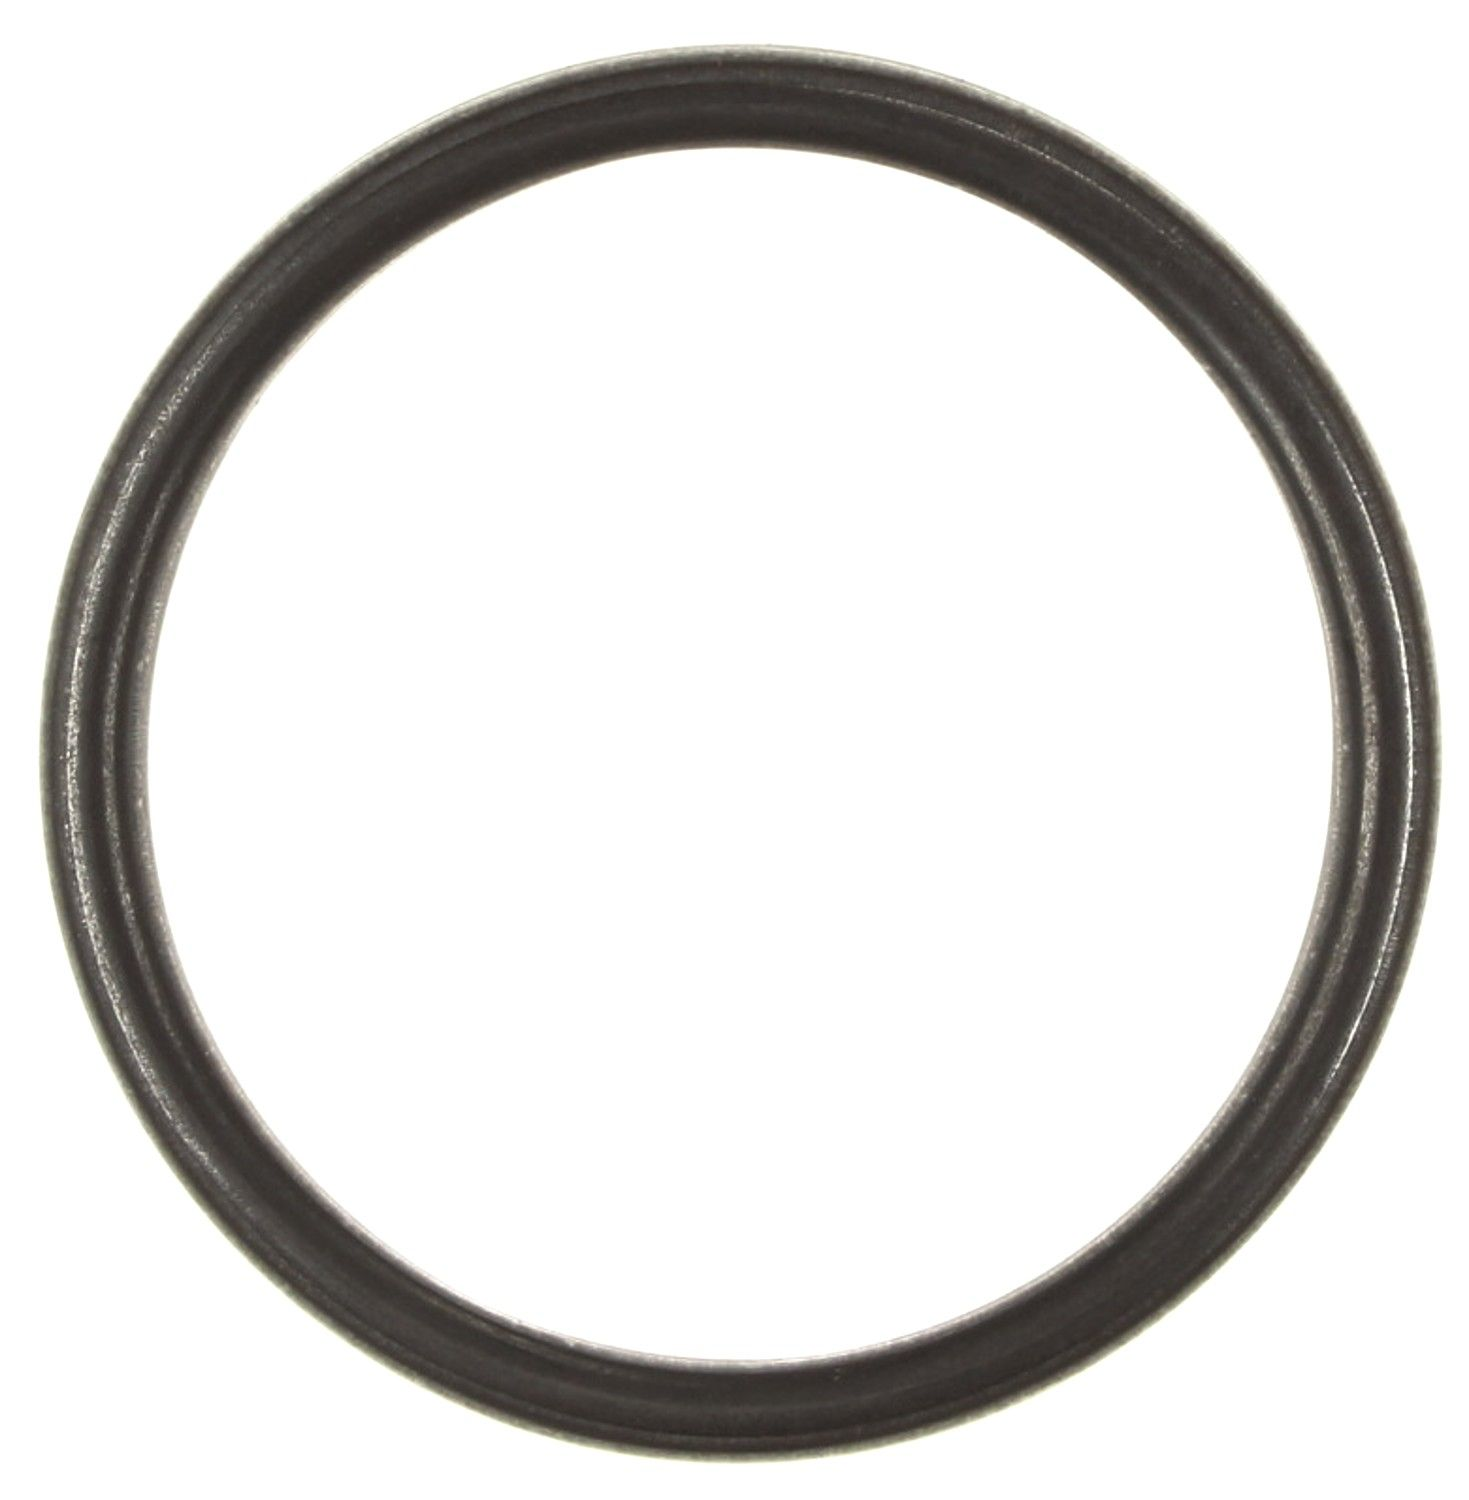 1997 Acura CL Exhaust Pipe Flange Gasket 4 Cyl 2.2L (Victor Gaskets F7467)  Ring Type A Steel and Composition Exhaust Manifold to Exhaust Pipe .